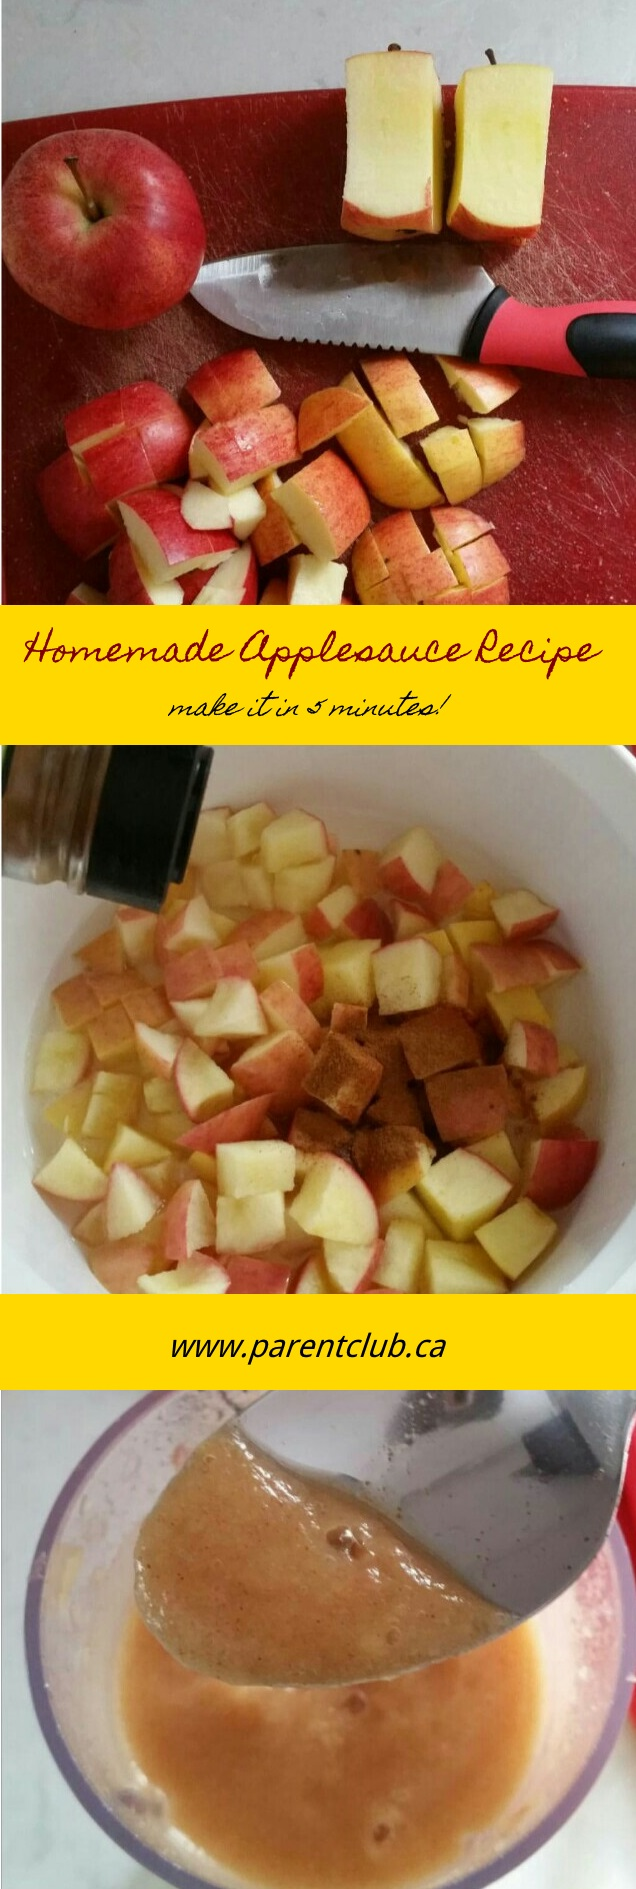 Microwave Homemade Applesauce Recipe via www.parentclub.ca